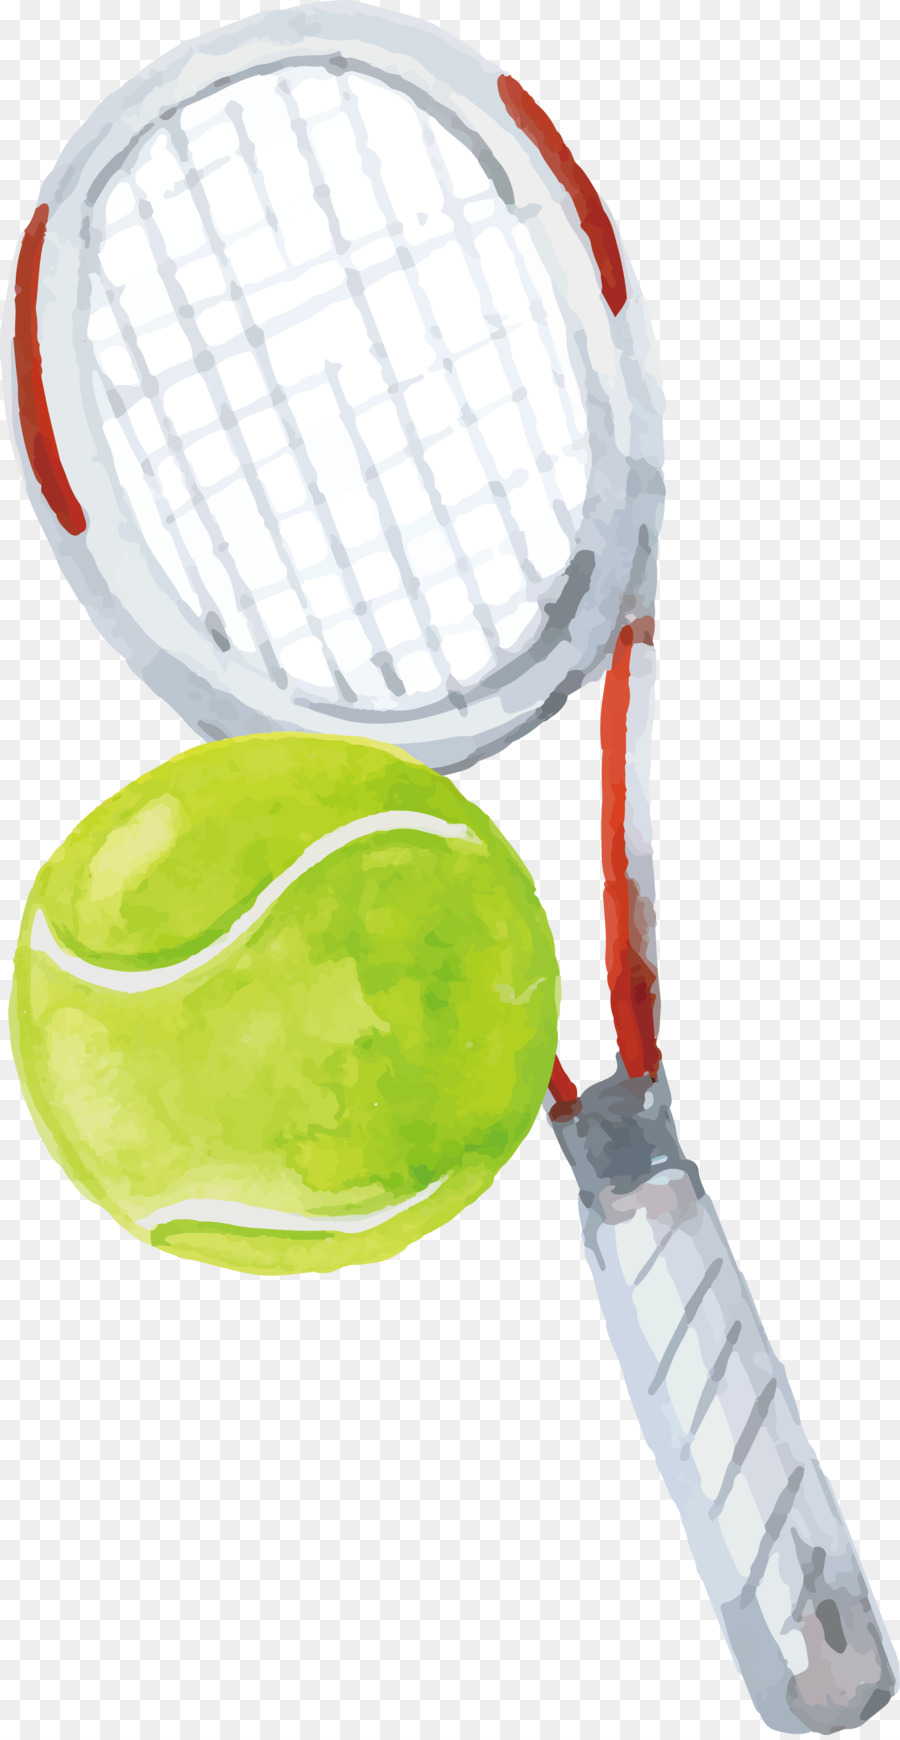 Tennis Ball Png Download 2155 4155 Free Transparent Strings Png Download Cleanpng Kisspng